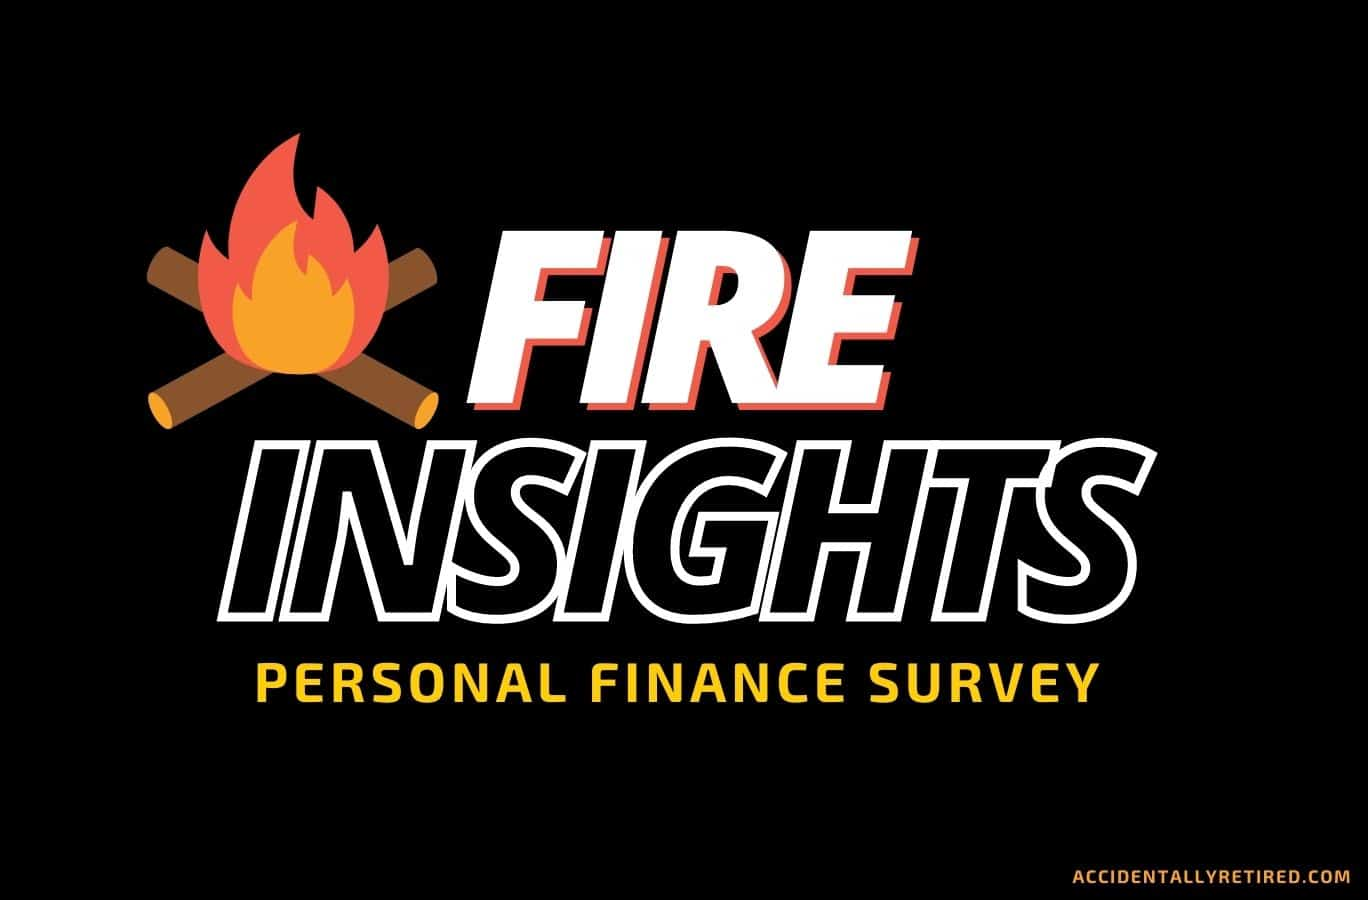 The FIRE Insights Survey